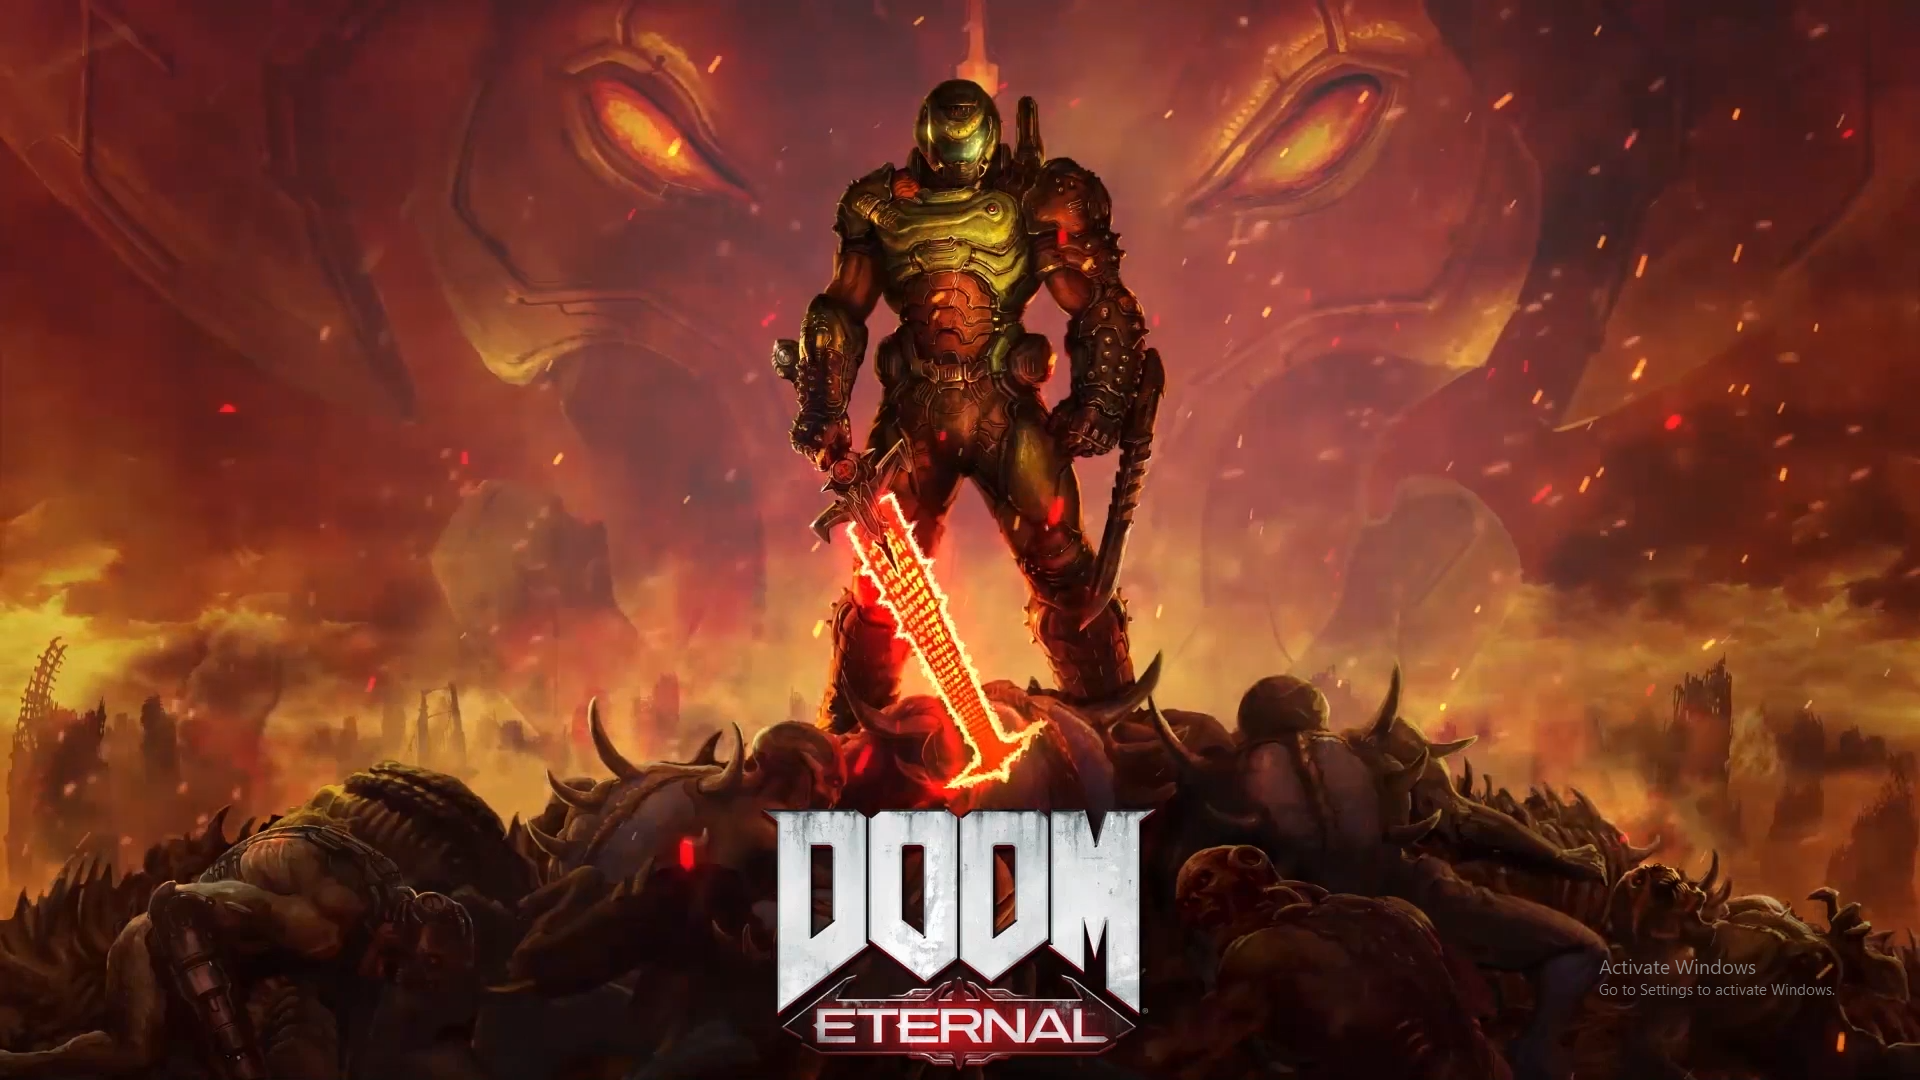 Doom Eternal 4k Wallpapers Top Free Doom Eternal 4k Backgrounds